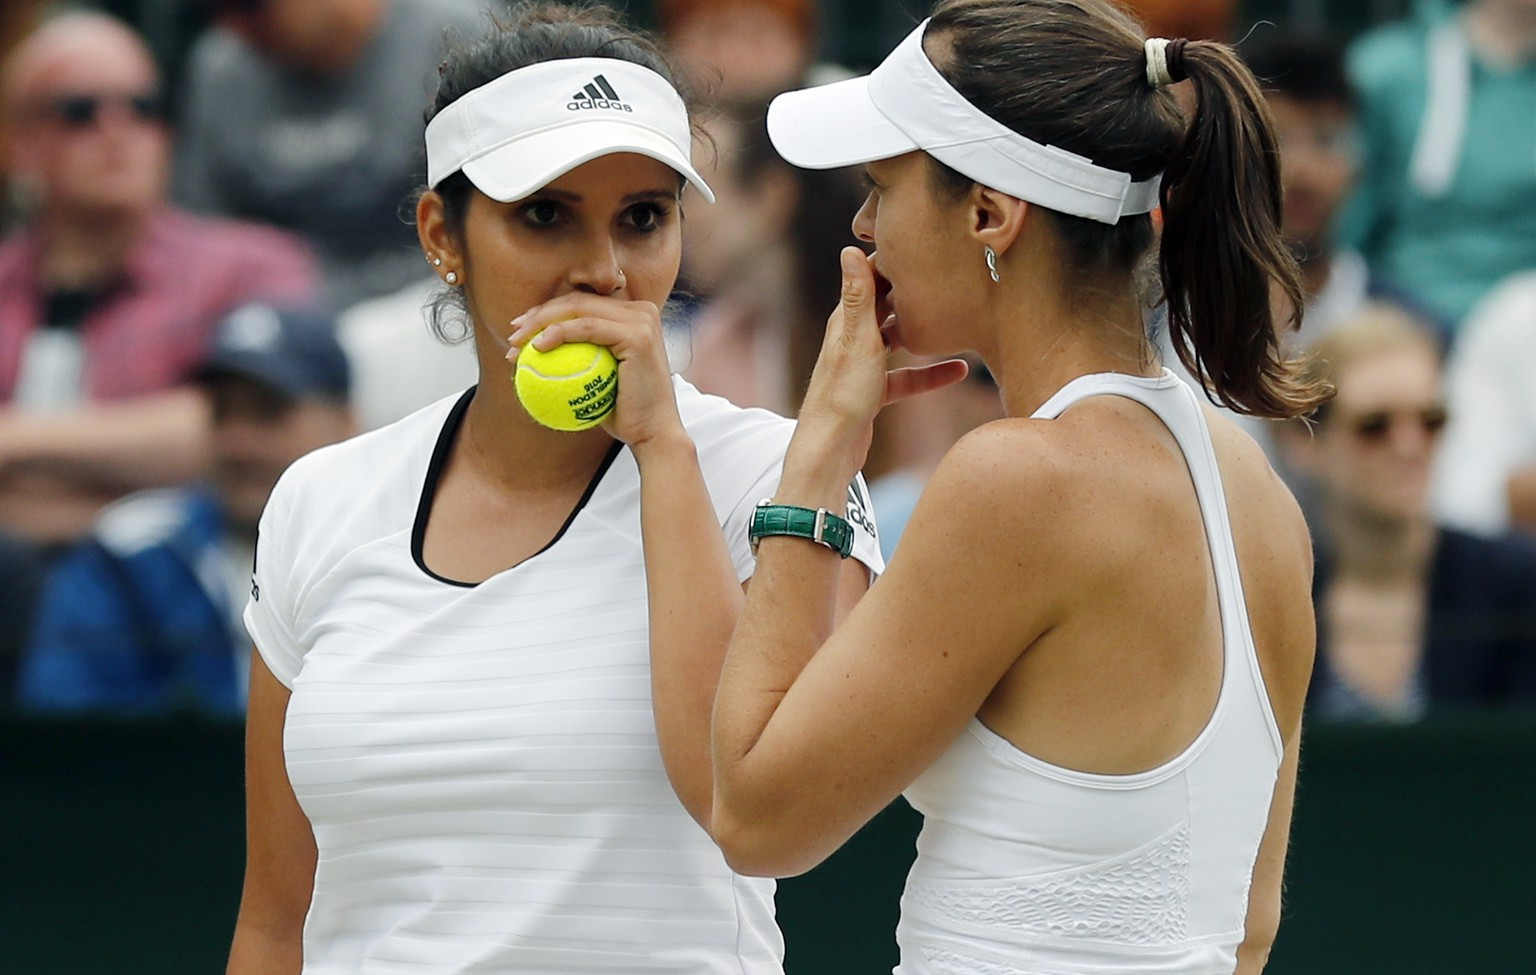 Sania Mirza of India, left, speaks with her partner Martina Hingis of Switzerland during their women's doubles match against Christina McHale of the U.S and Jelena Ostapenko of Latvia on day eight of the Wimbledon Tennis Championships in London, Monday, July 4, 2016. (AP Photo/Ben Curtis)